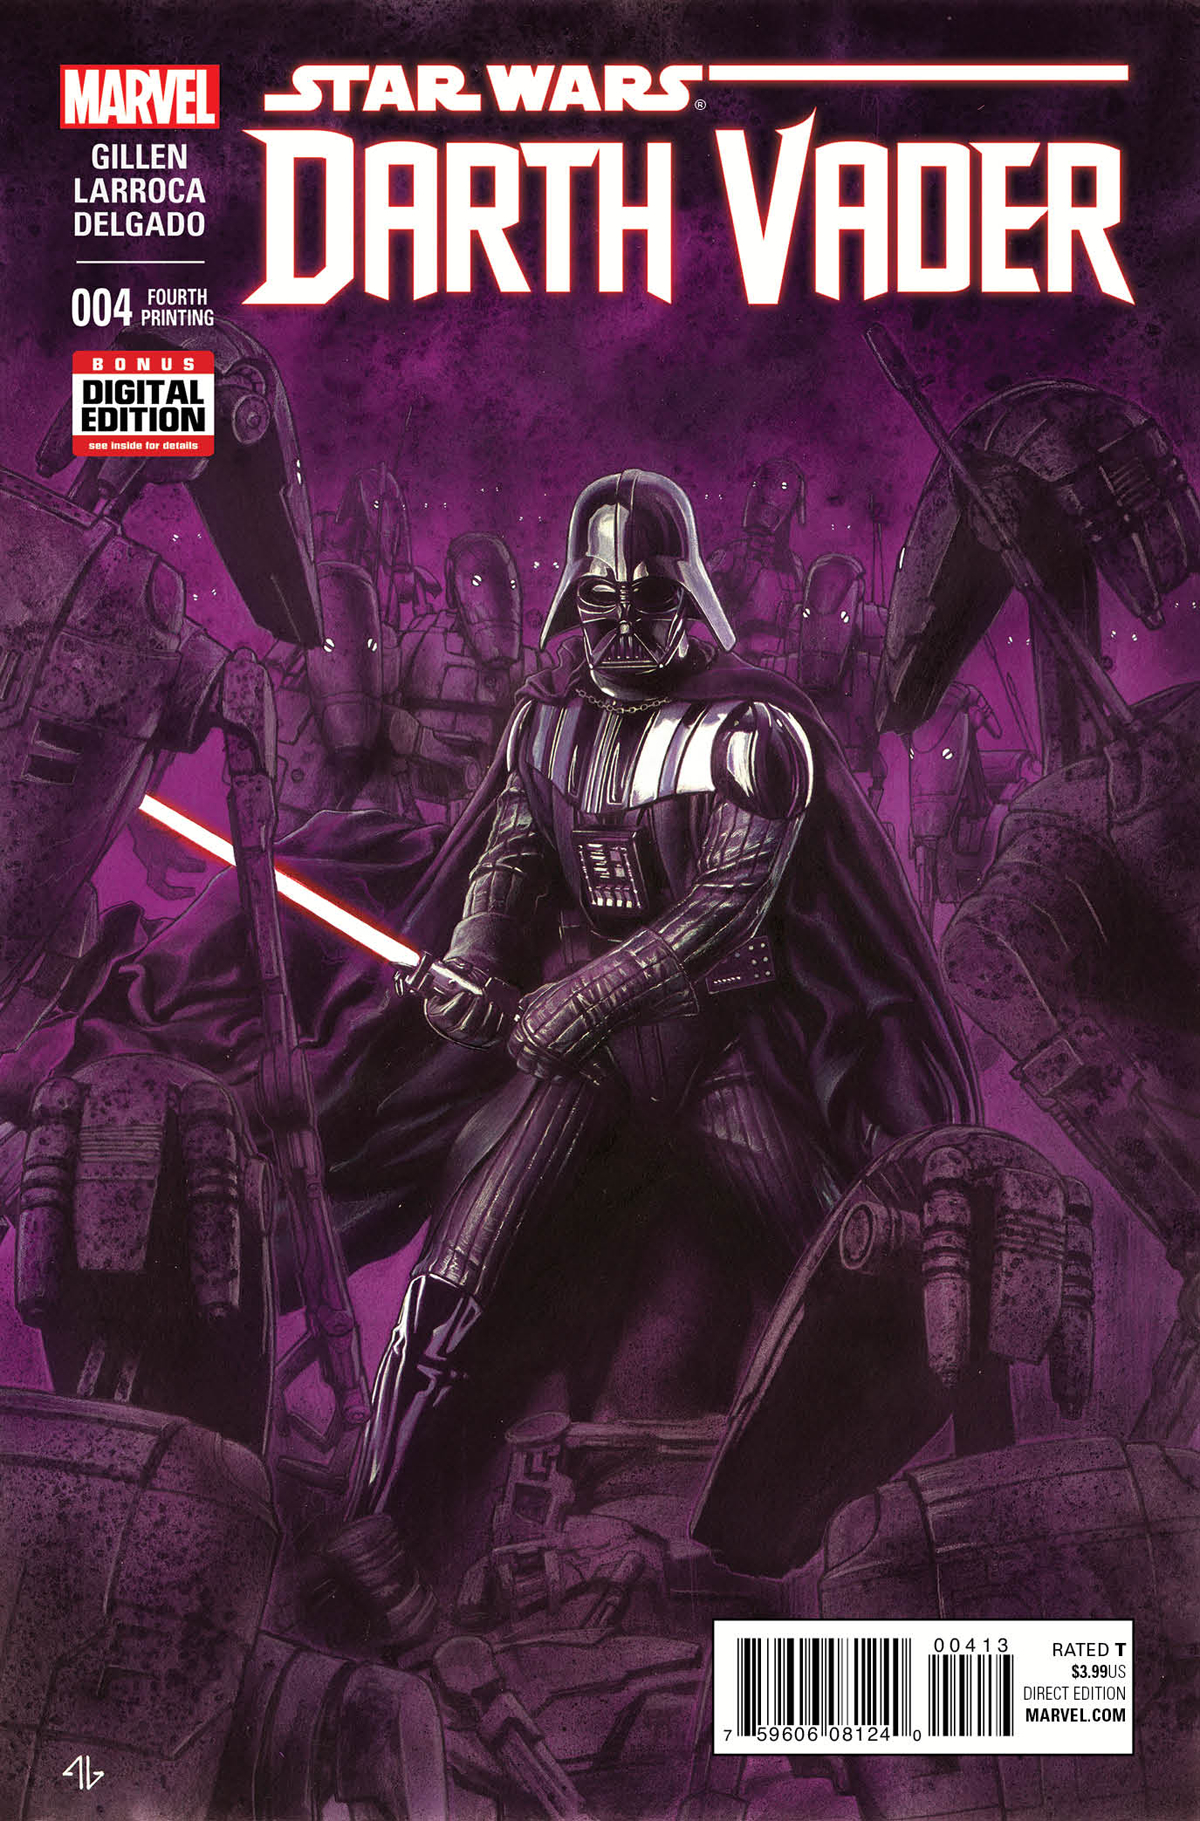 DARTH VADER #4 GRANOV 4TH PTG VAR